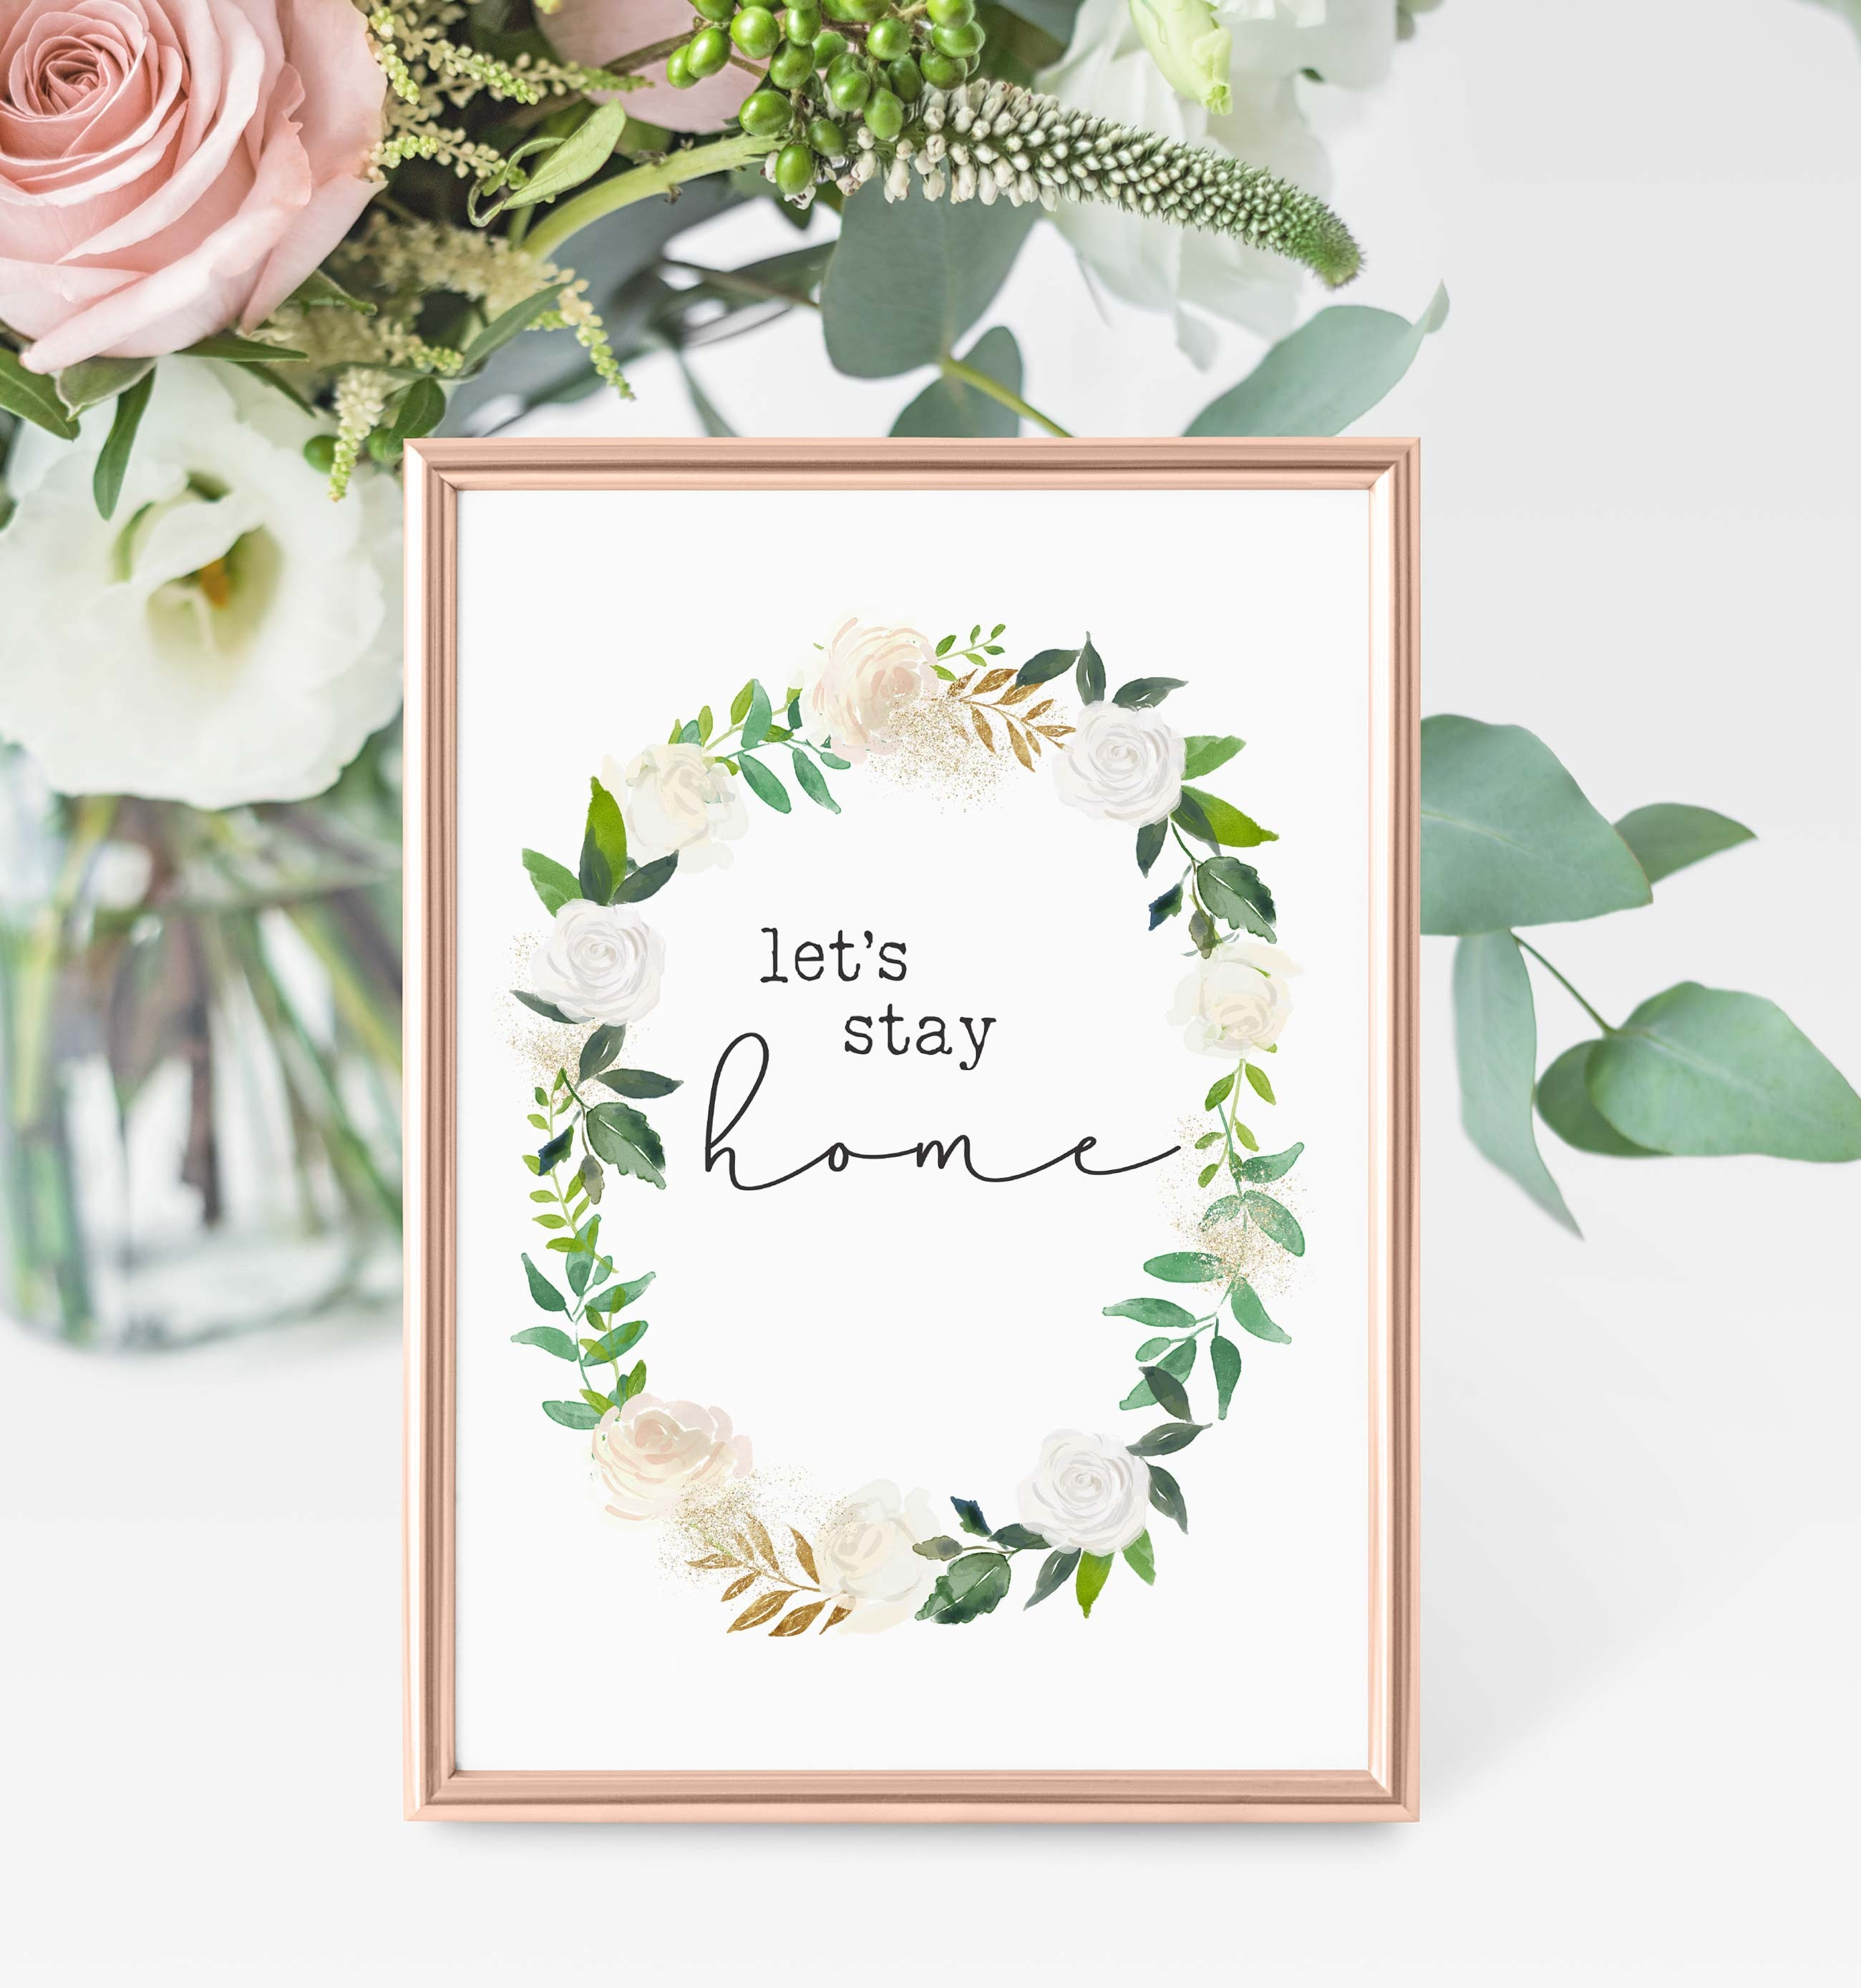 Free Printables - Let's Stay Home | The Harper House - Free Watercolor Printables